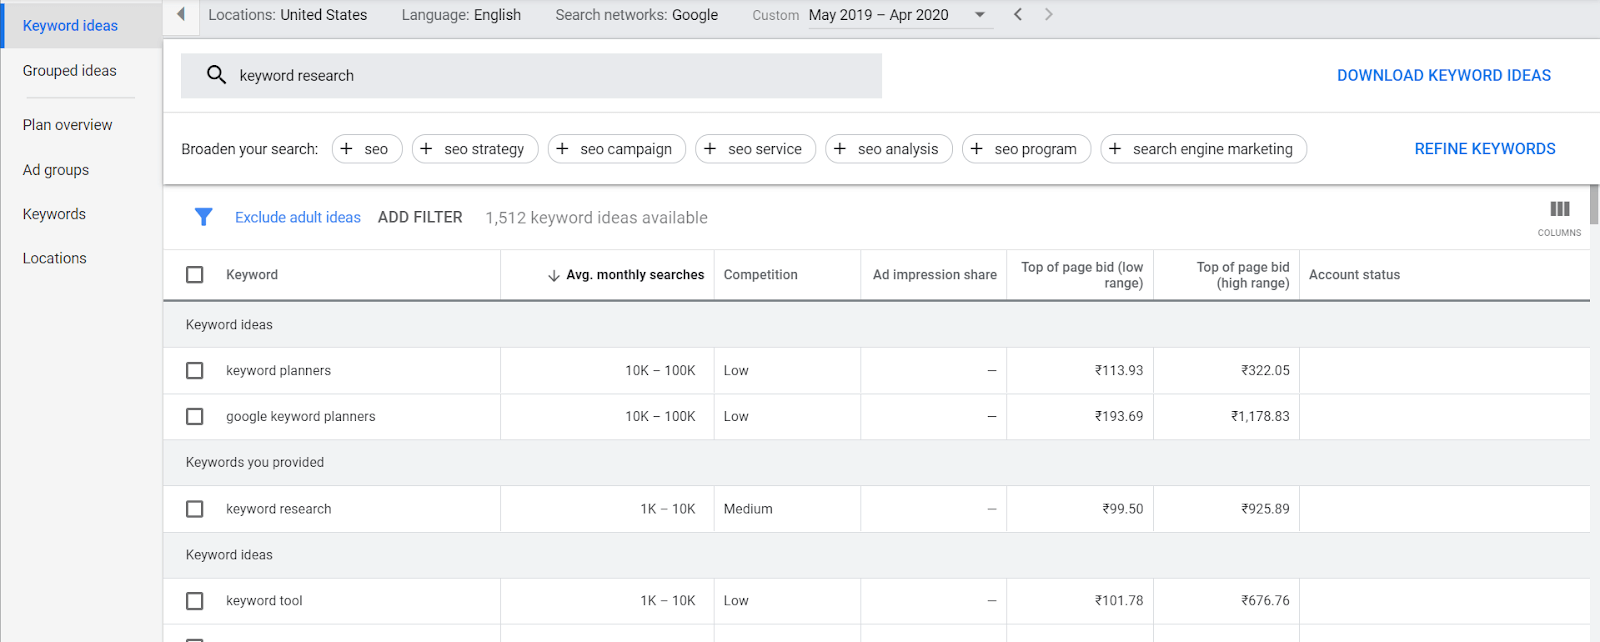 Google Keyword Planner2 keyword research for small businesses